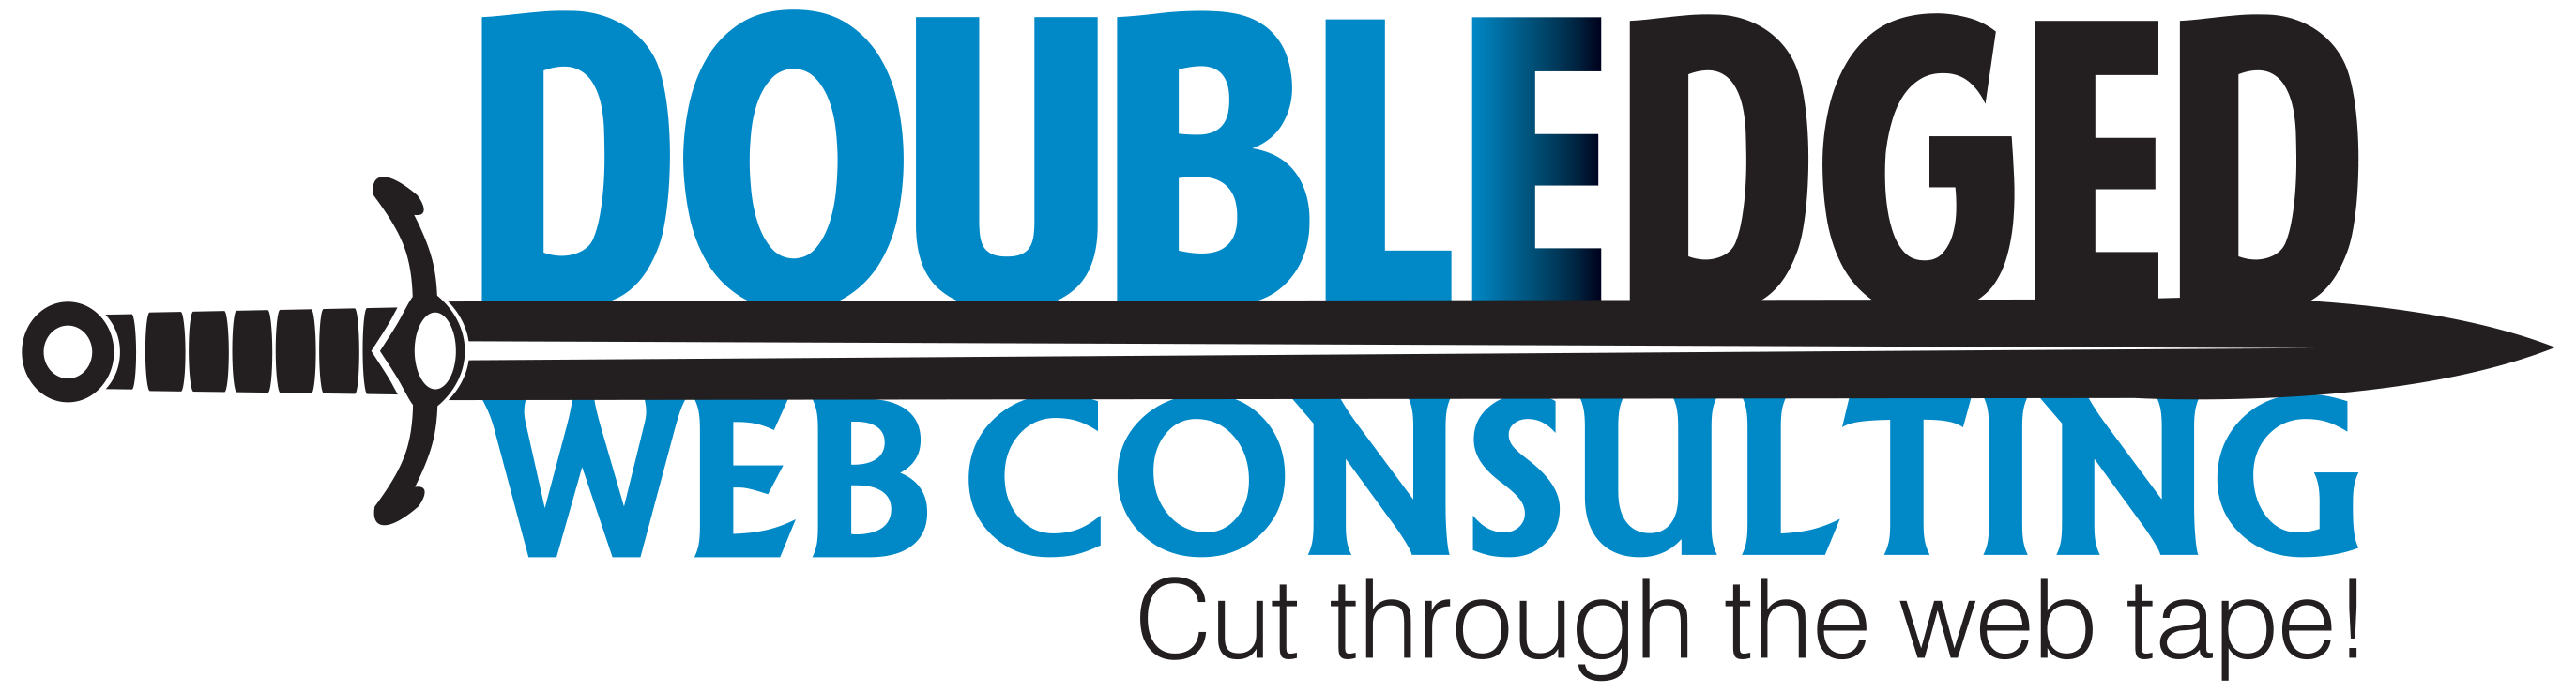 Double Edged Web Consulting